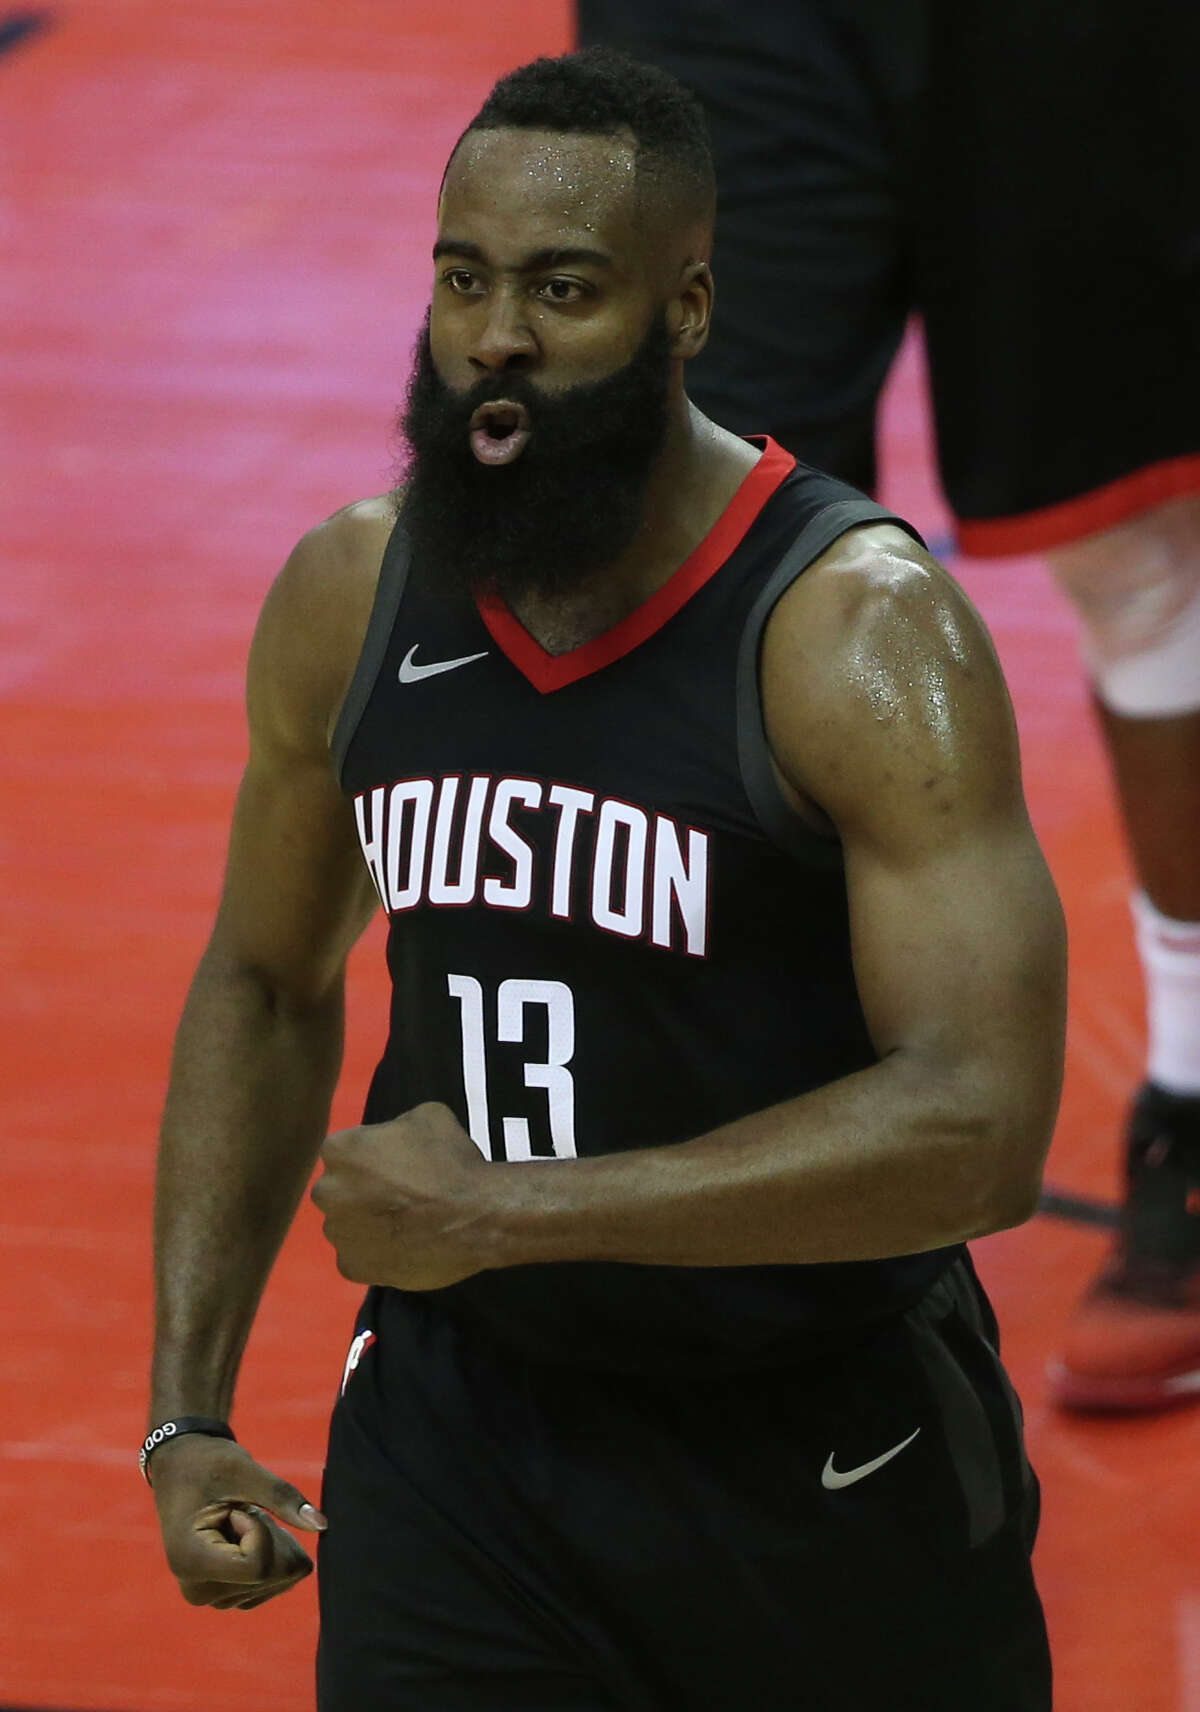 Houston Rockets guard James Harden (13) cheers for himself before going on the line for two free throws after being fouled by Minnesota Timberwolves center Gorgui Dieng (5) during the third quarter of Game 1 of an NBA basketball first-round playoff series at Toyota Center on Sunday, April 15, 2018, in Houston. ( Yi-Chin Lee / Houston Chronicle )